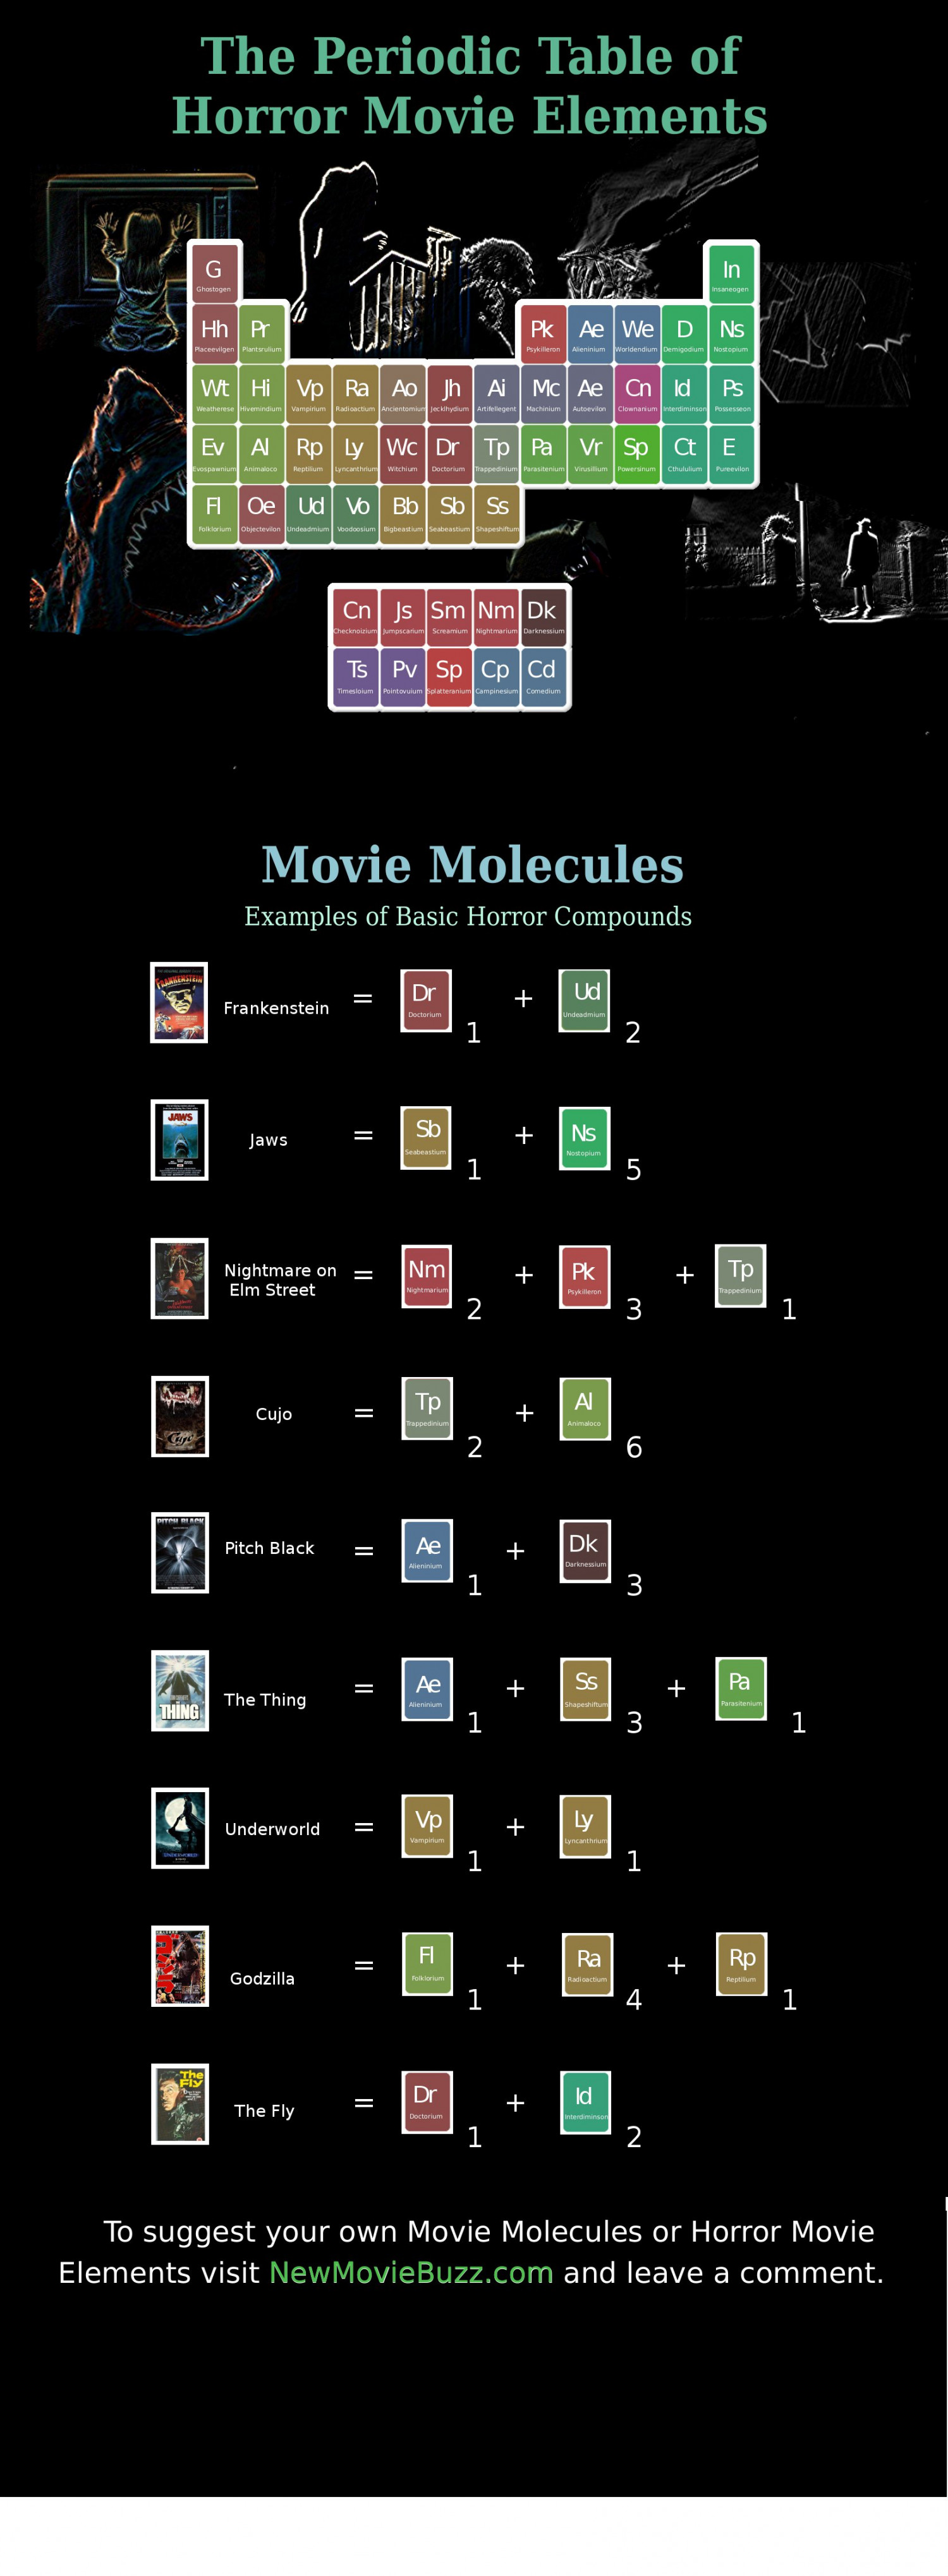 The periodic table of horror movie elements visual the periodic table of horror movie elements infographic embed this visual urtaz Images